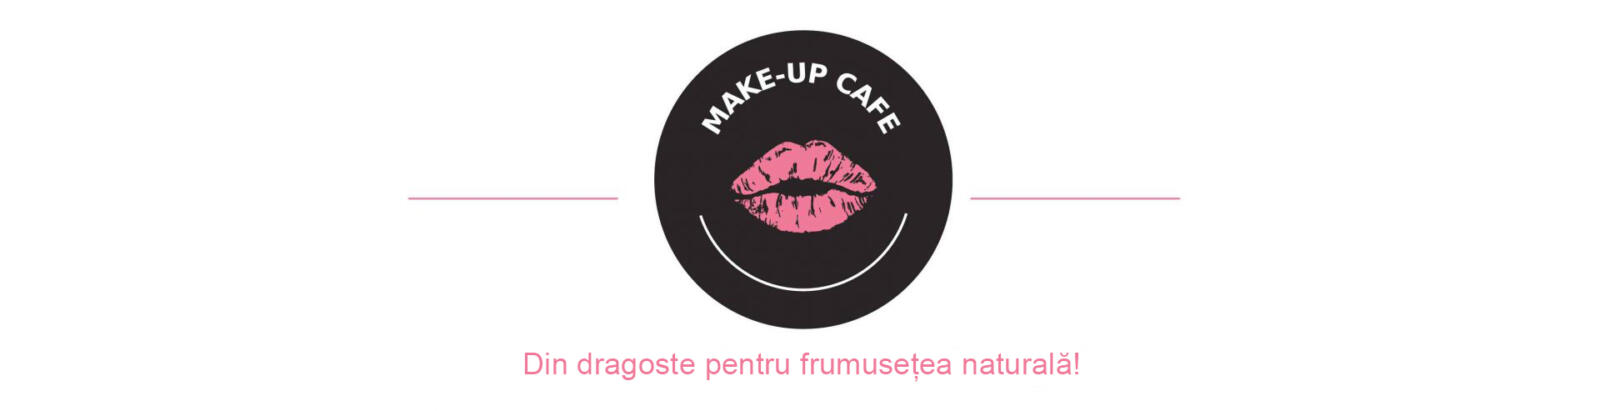 Make-up cafe